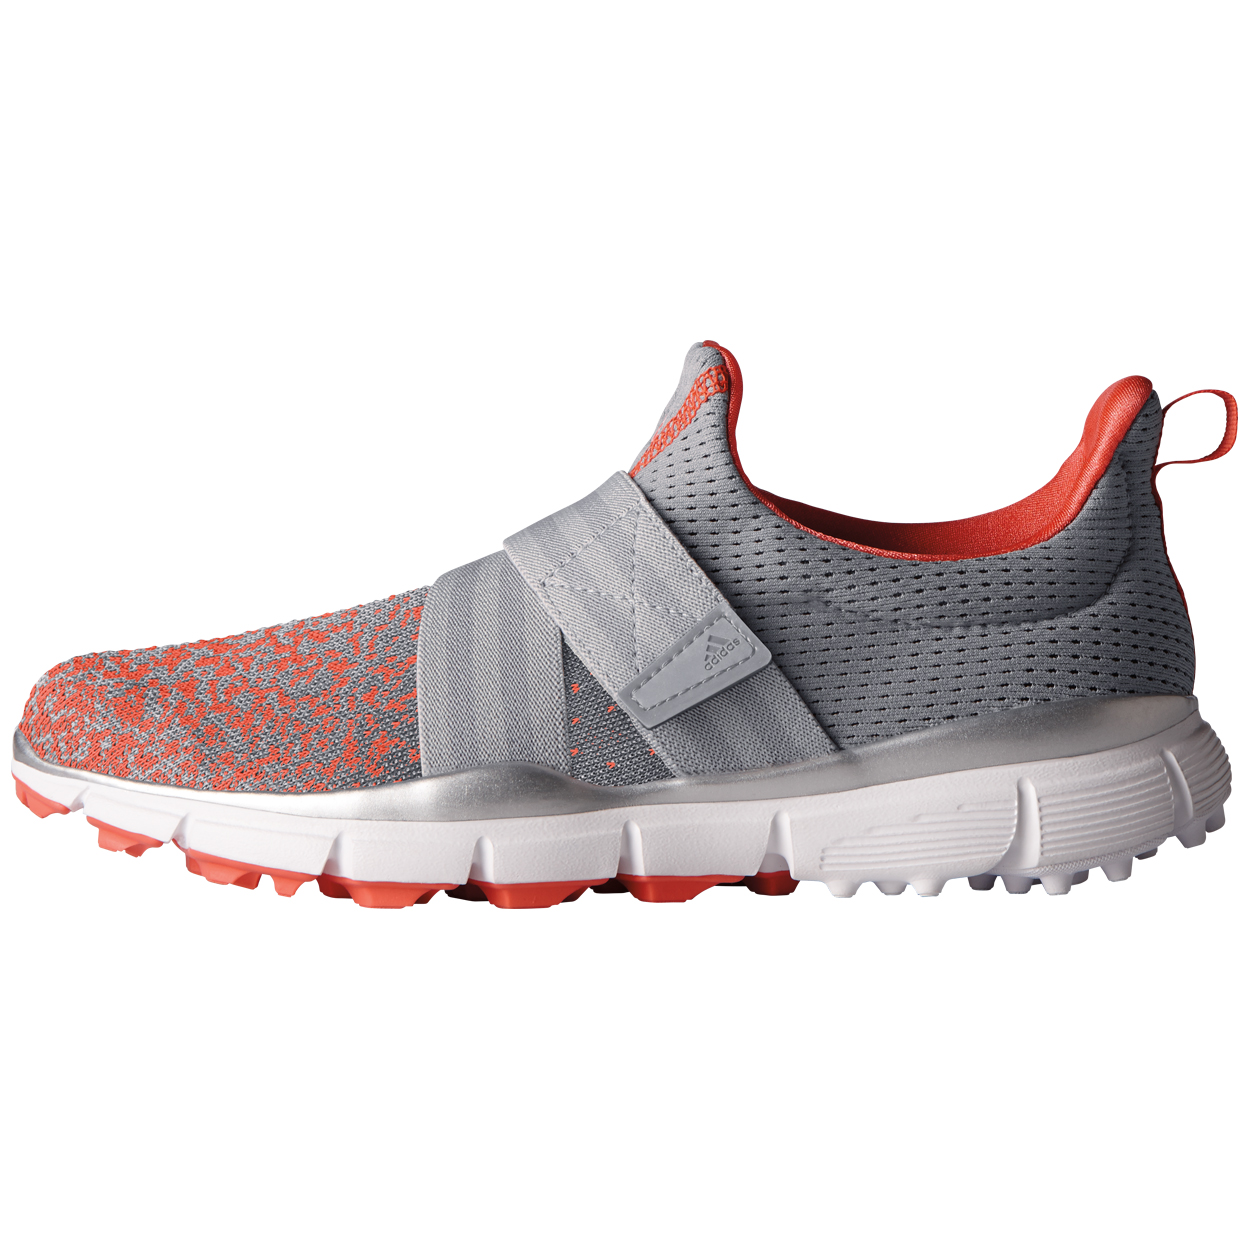 Womens Adidas W Climacool Knit Ltonix C Golf Shoe Light Onix